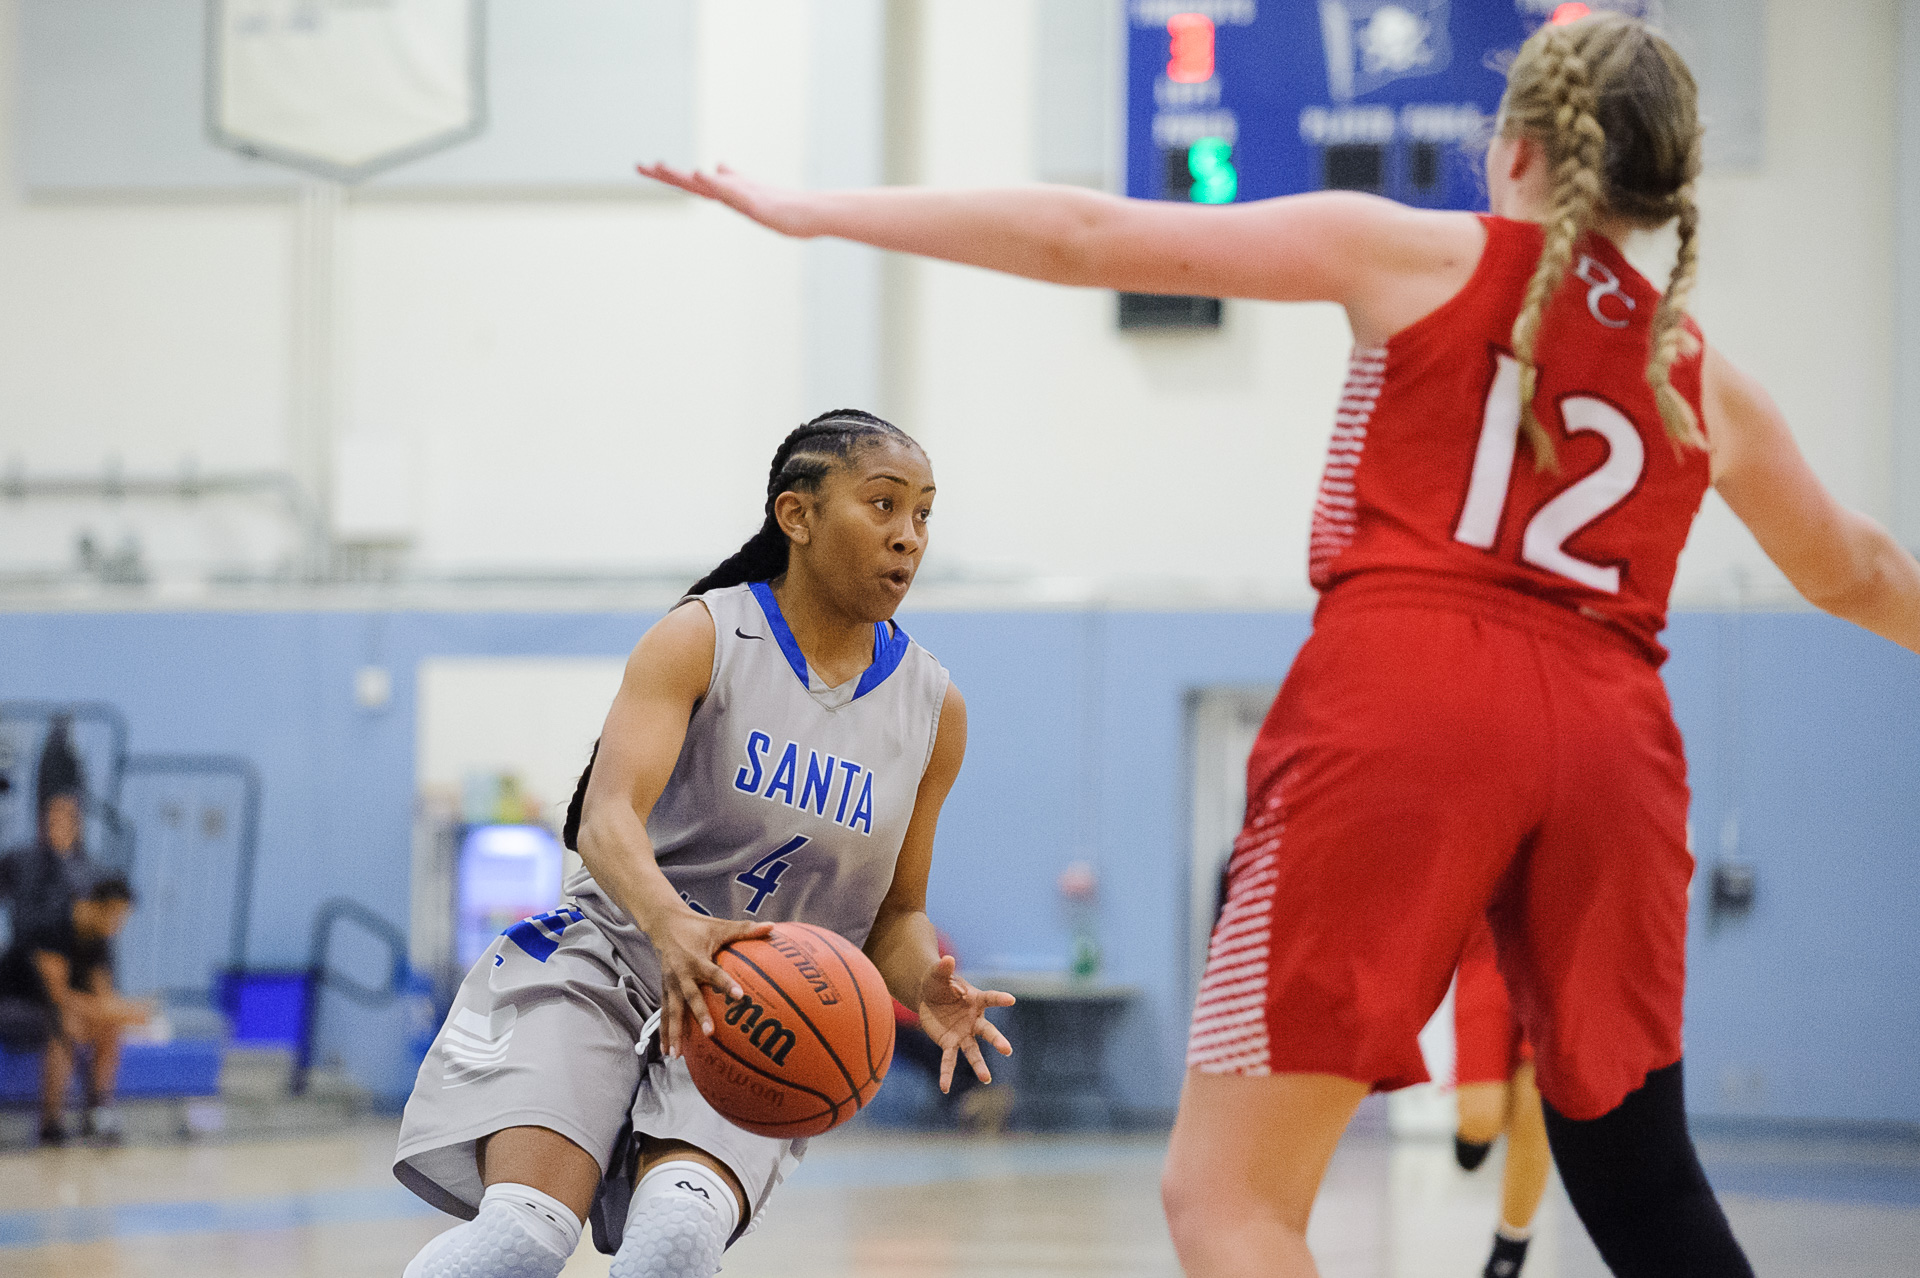 Guard Lisa Hall (4,Left) of Santa Monica College prepares to make a pass while being guarded by Angie Kroeger (12,Right) of Bakersfield College. The Santa Monica College Corsairs lose the game 62-72 to the Bakersfield College Renegades. The game was held at the SMC Pavilion at the Santa Monica College Main Campus in Santa Monica, Calif.. January 20, 2018. (Photo by: Justin Han/Corsair Staff)